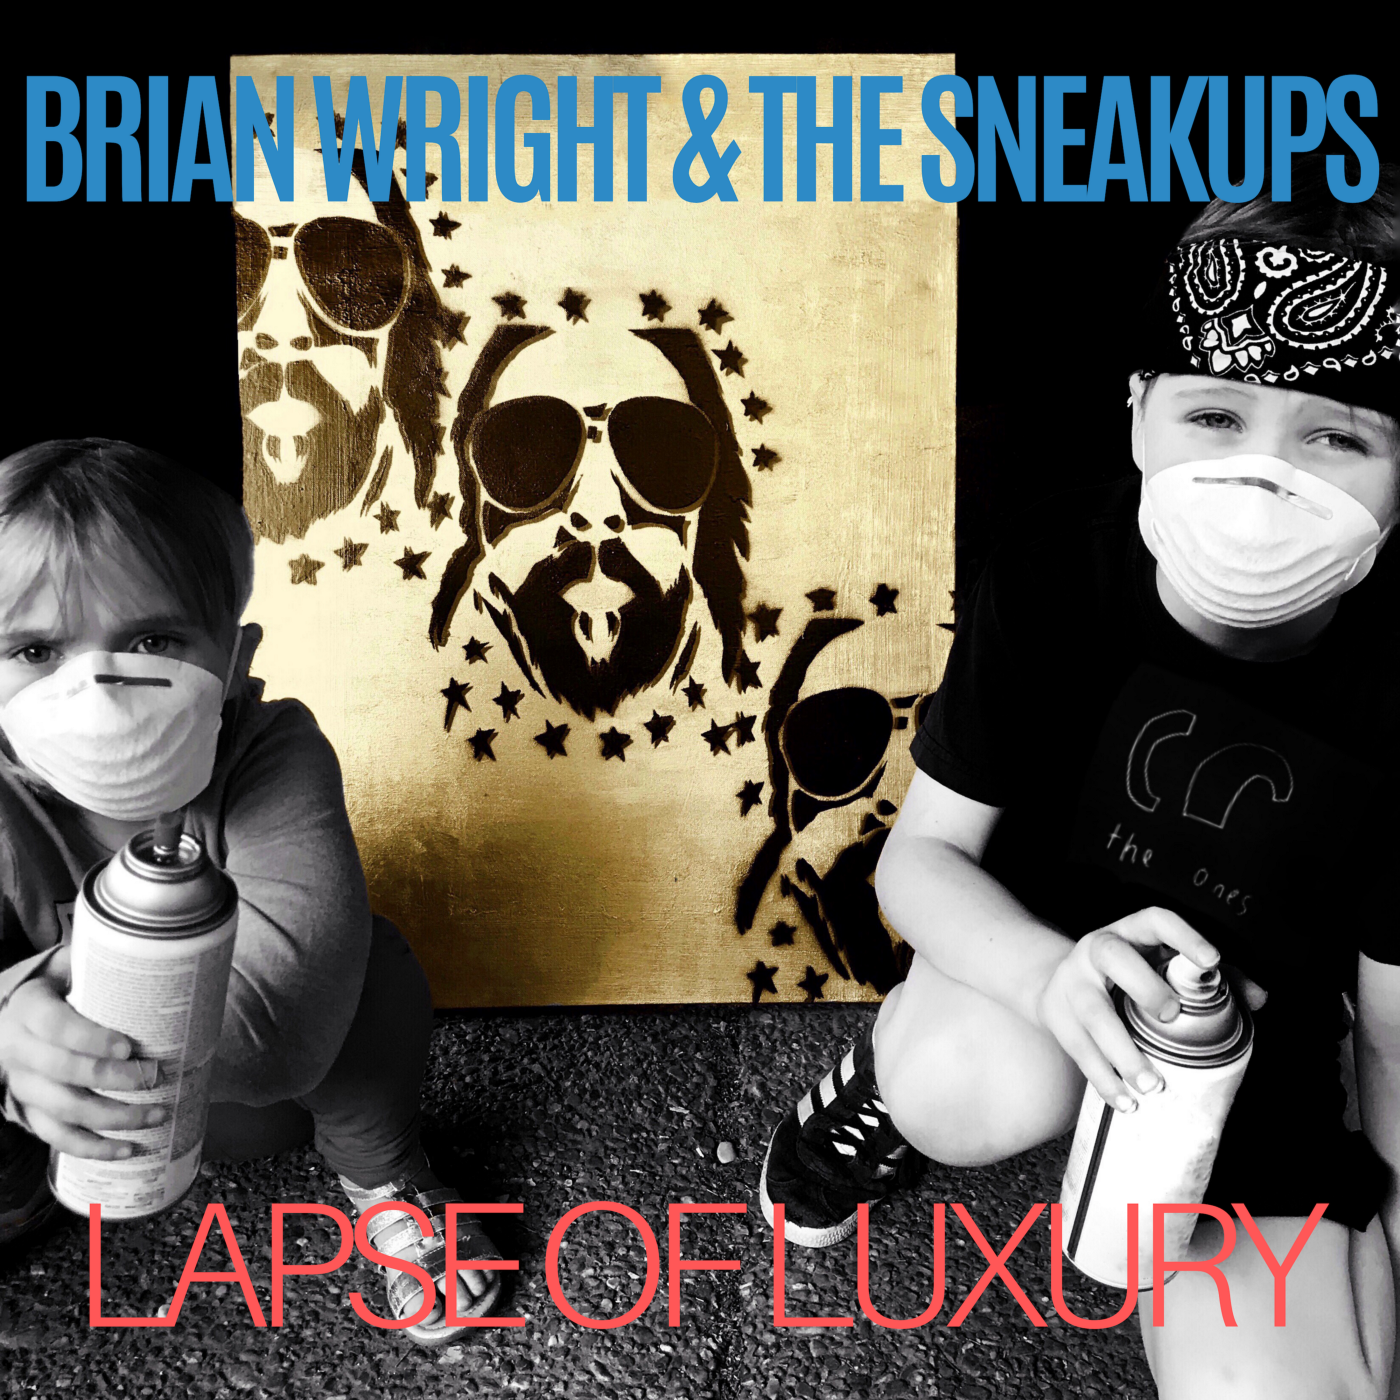 Brian Wright and the Sneakups